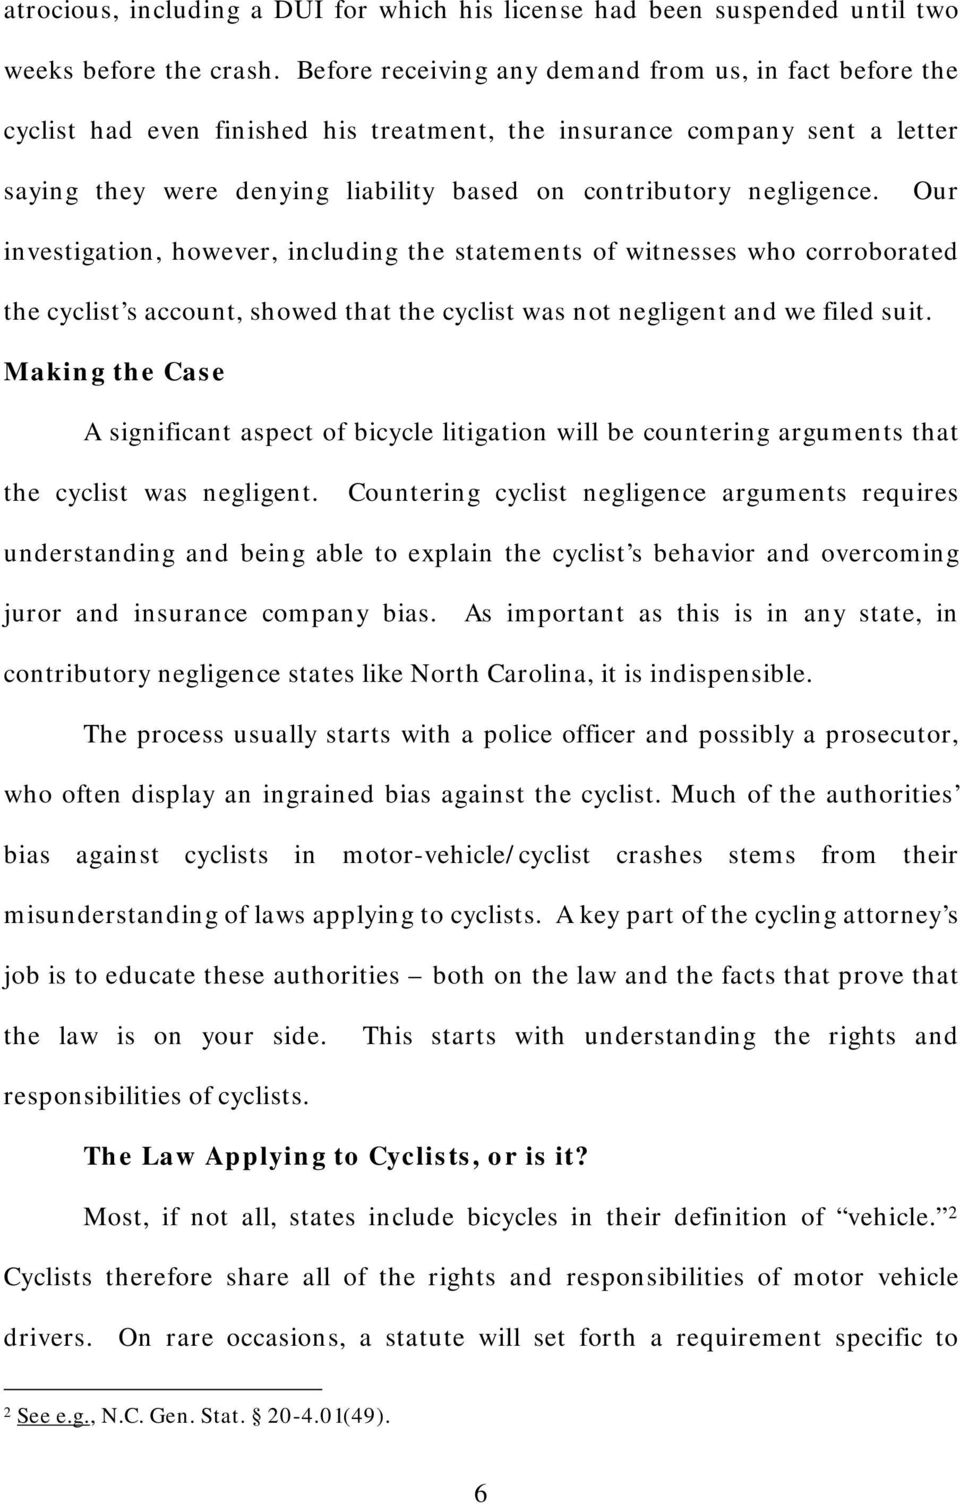 negligence. Our investigation, however, including the statements of witnesses who corroborated the cyclist s account, showed that the cyclist was not negligent and we filed suit.